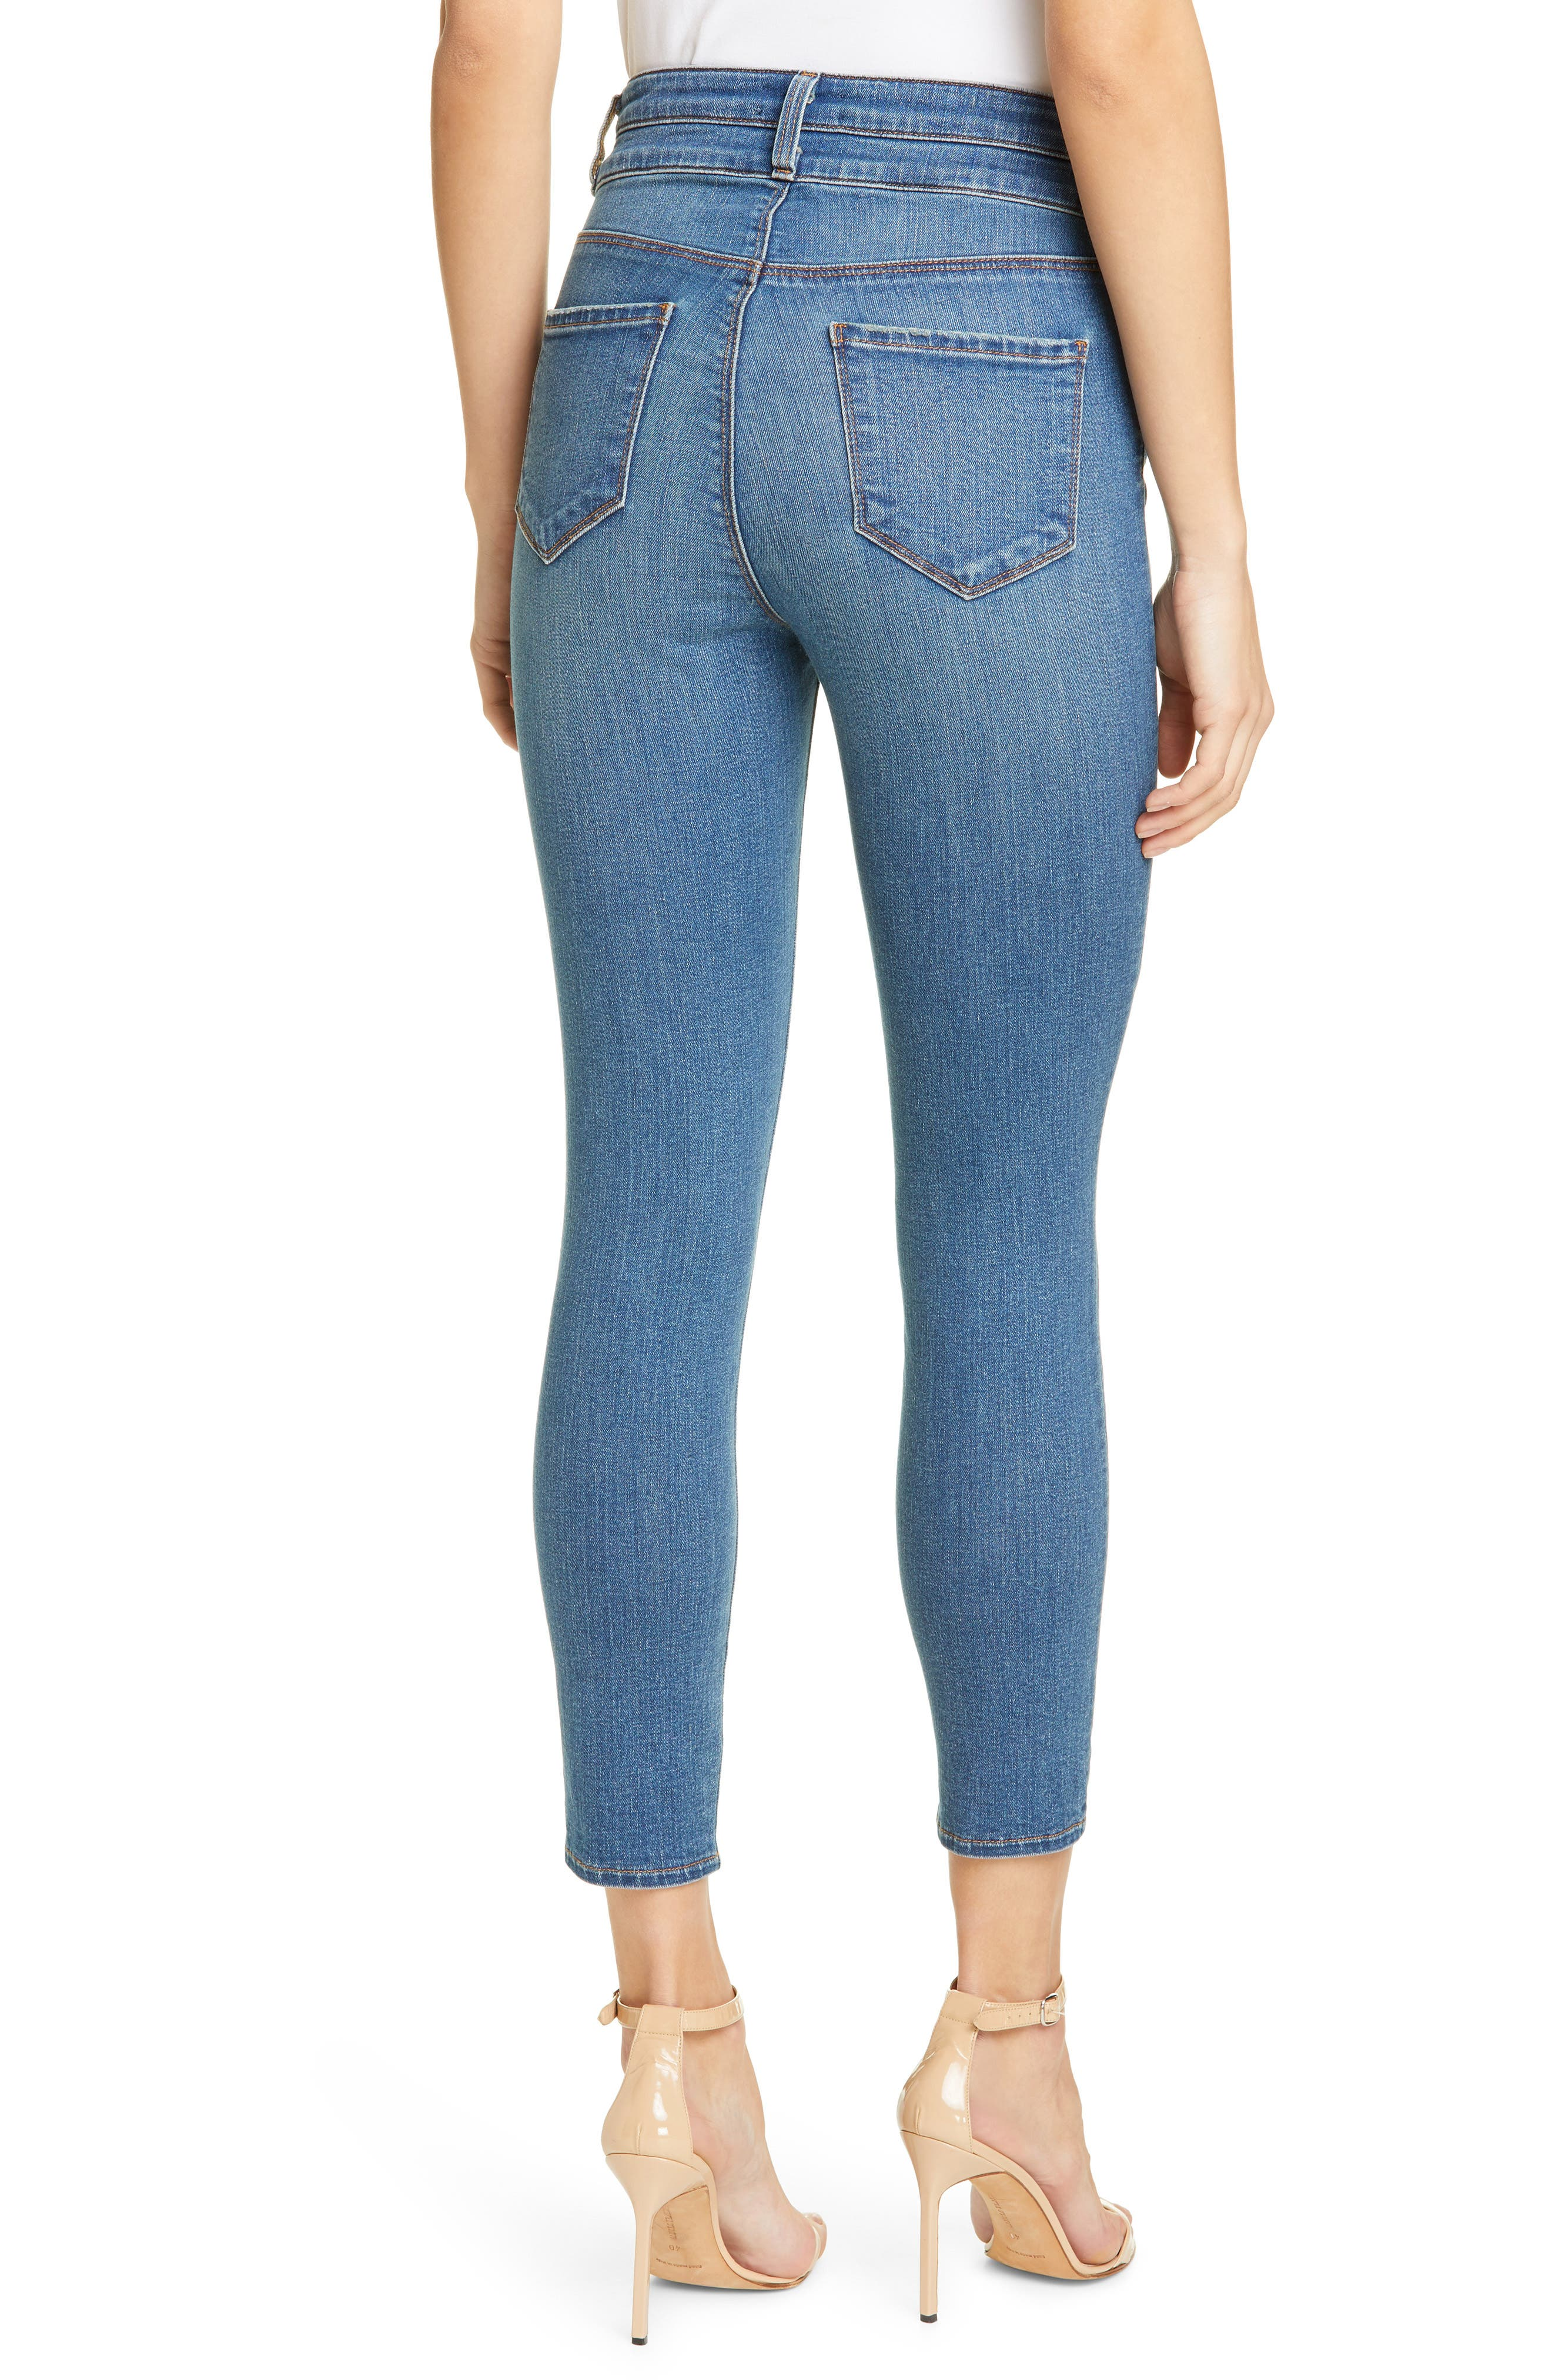 L'agence Jeans Peyton High Waist Crop Skinny Jeans